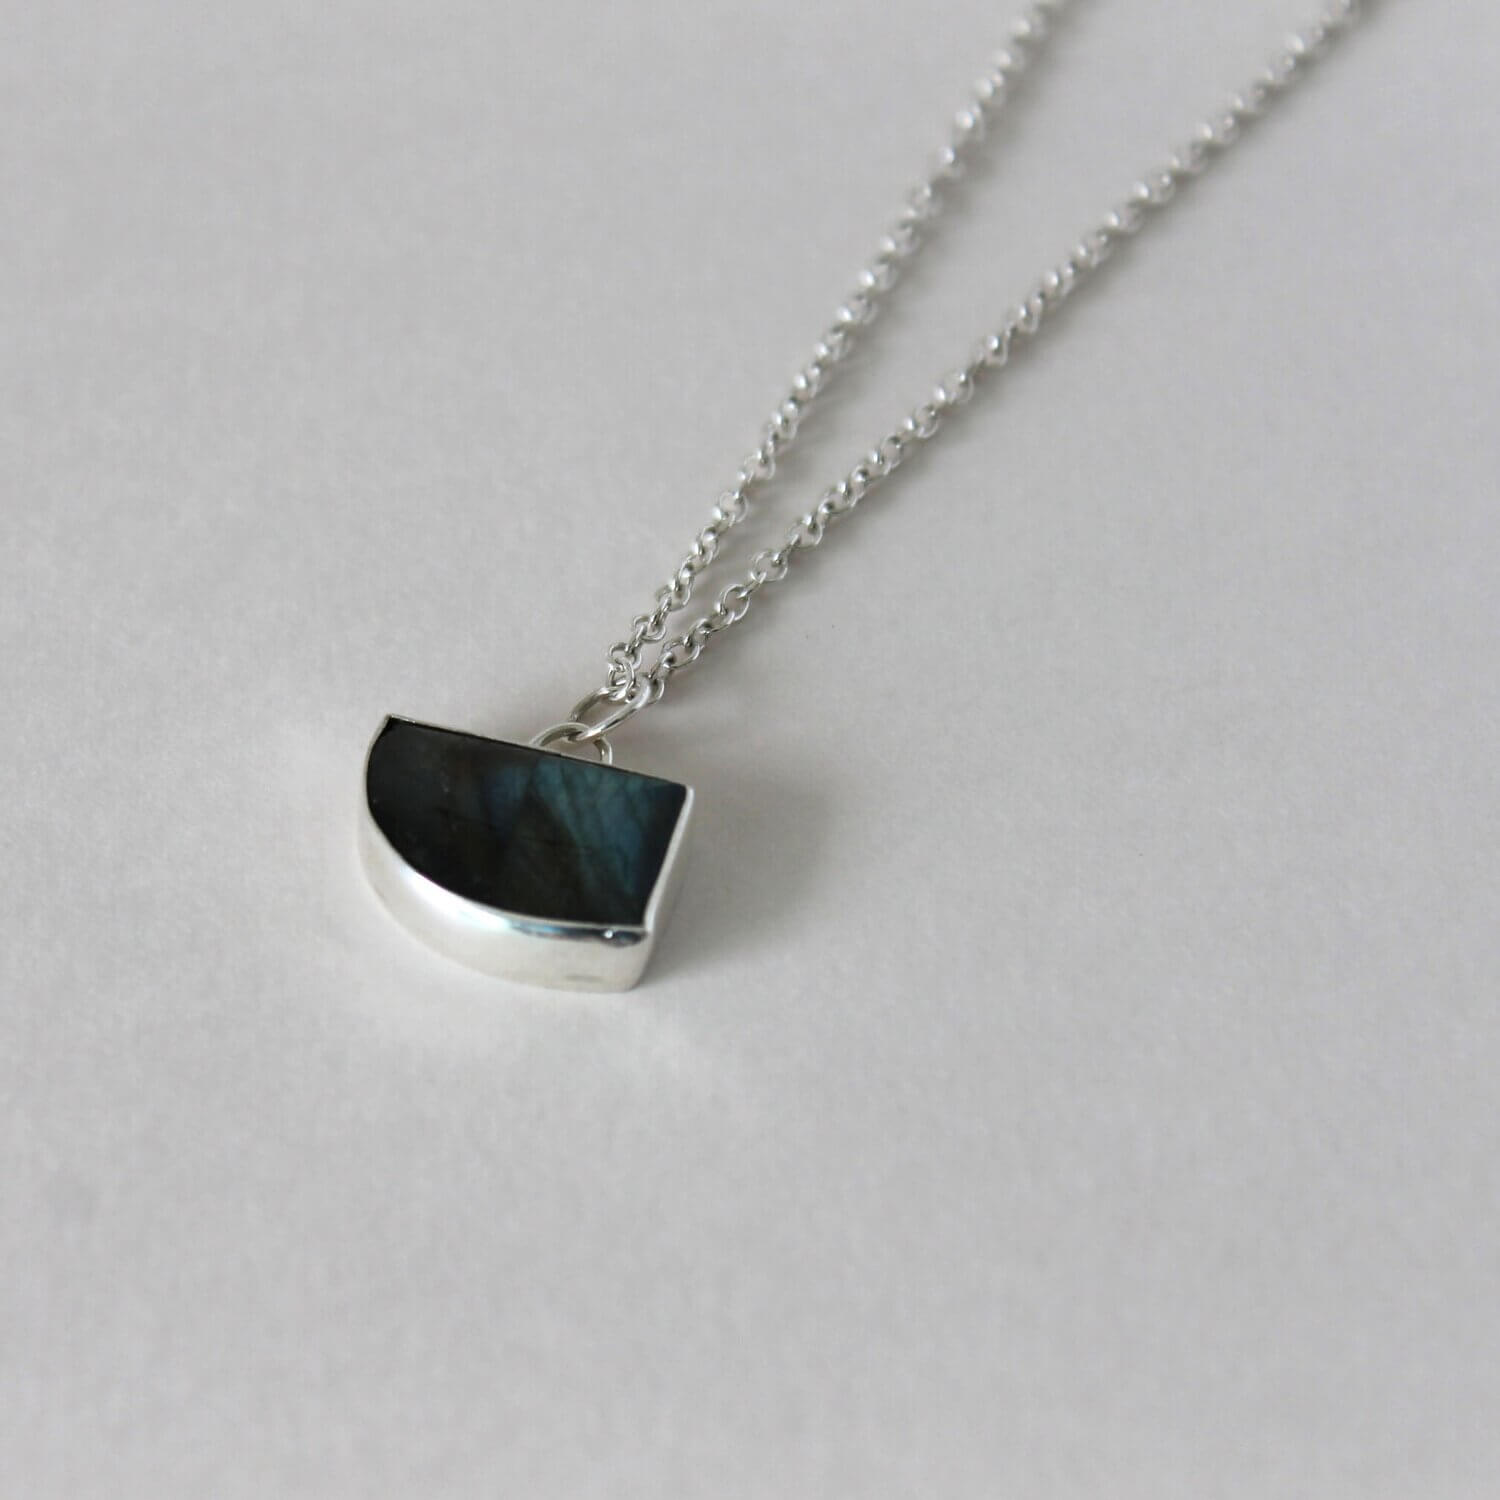 Silver and black stone necklace with delicate chain